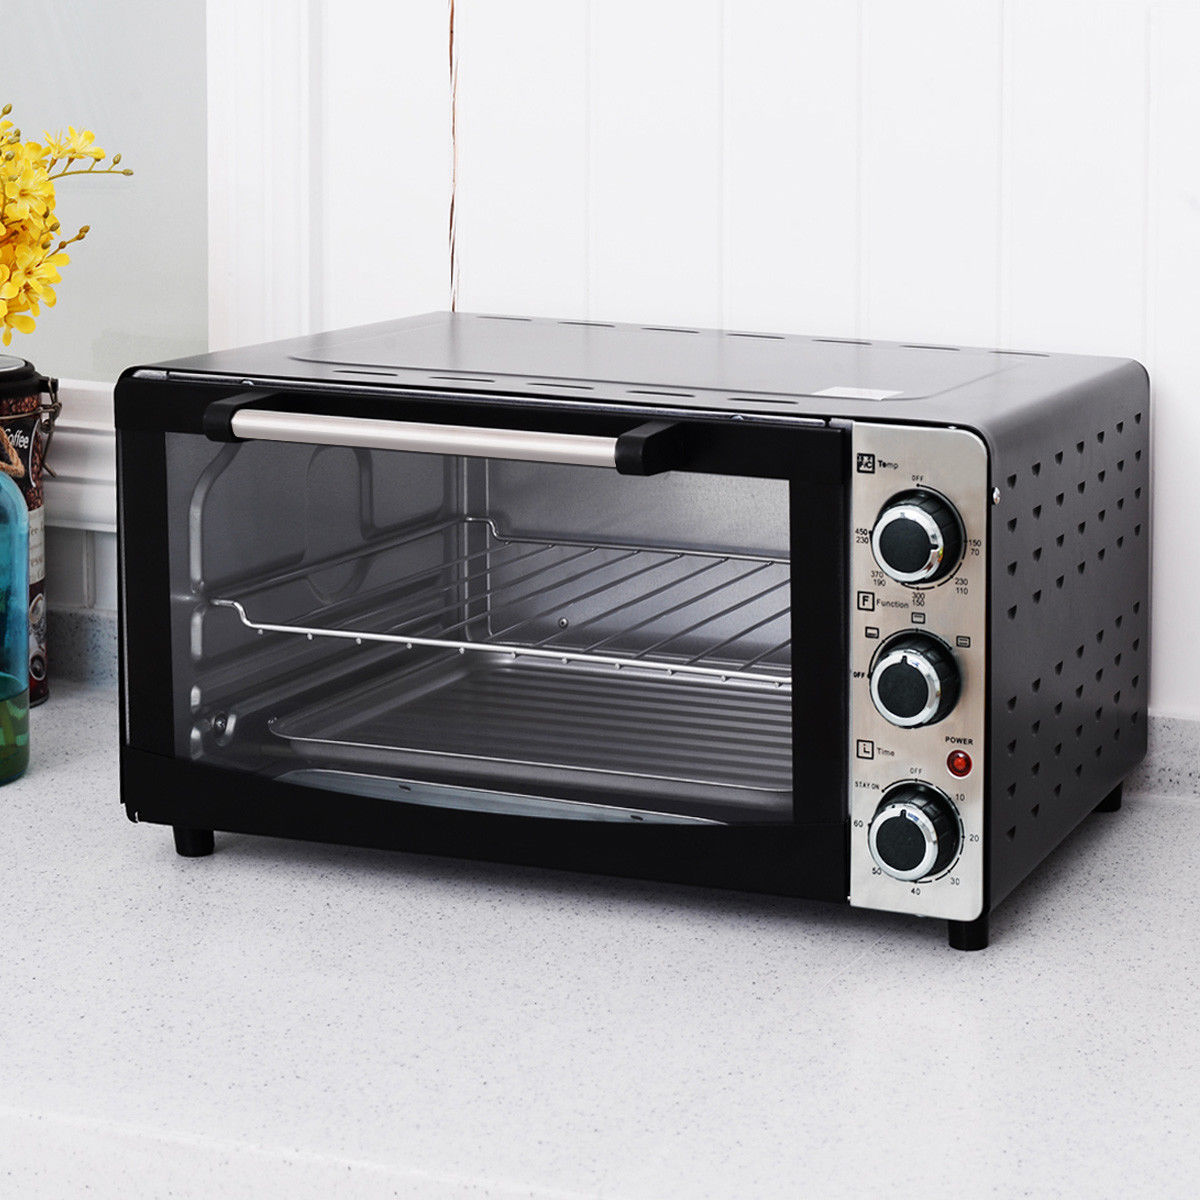 Costway 1300W Electric Toaster Oven Broiler Pizza 20L Countertop with Drip Pan